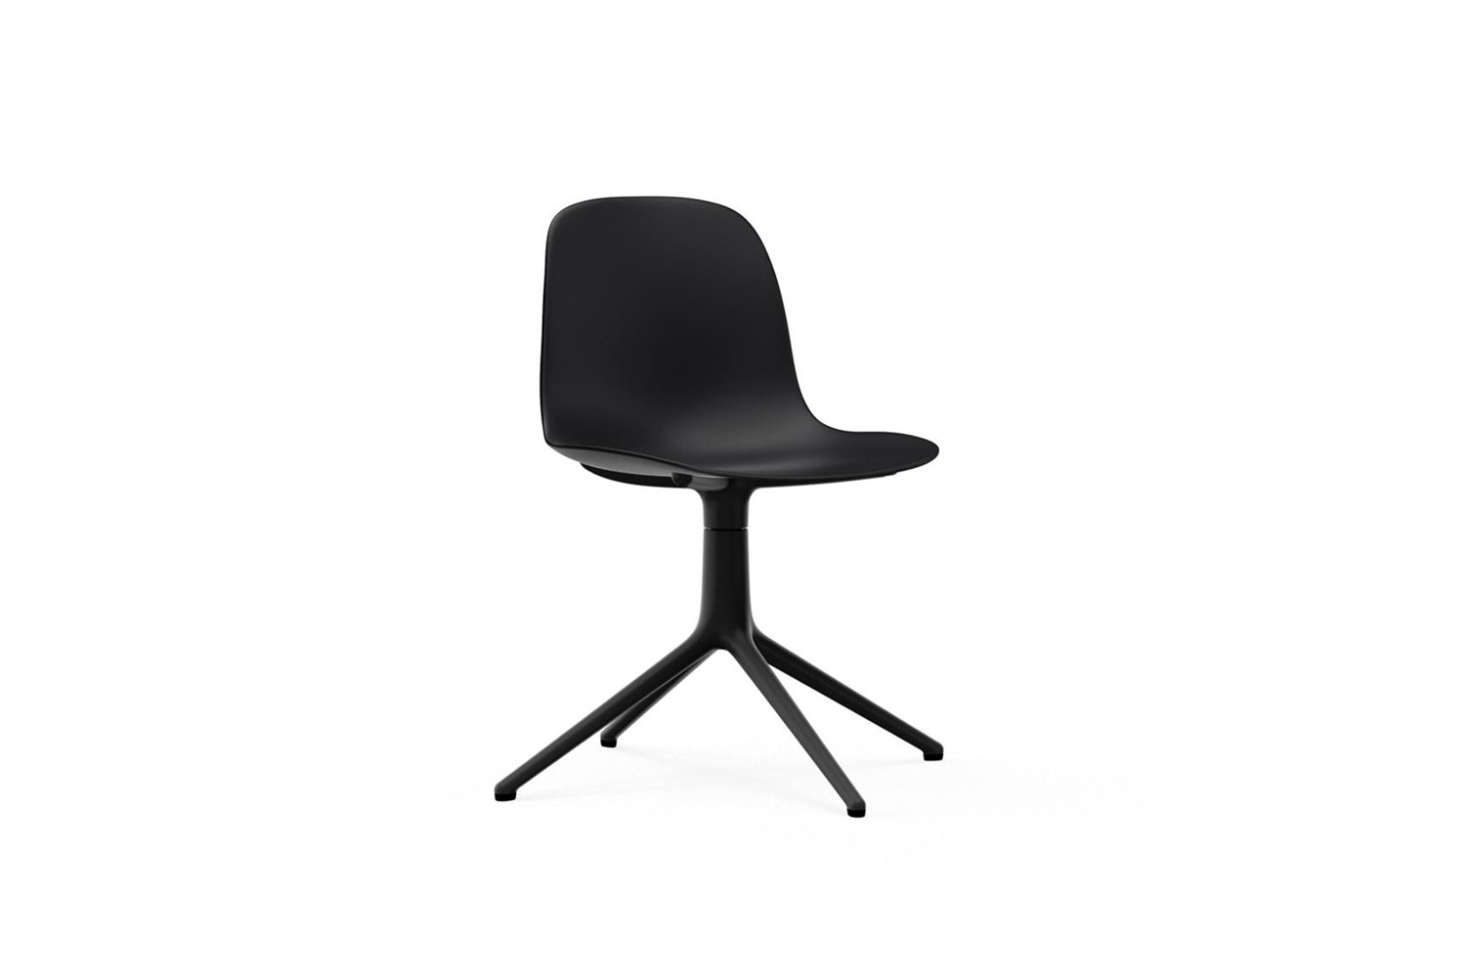 10 Easy Pieces Modern Desk Chairs Without Wheels